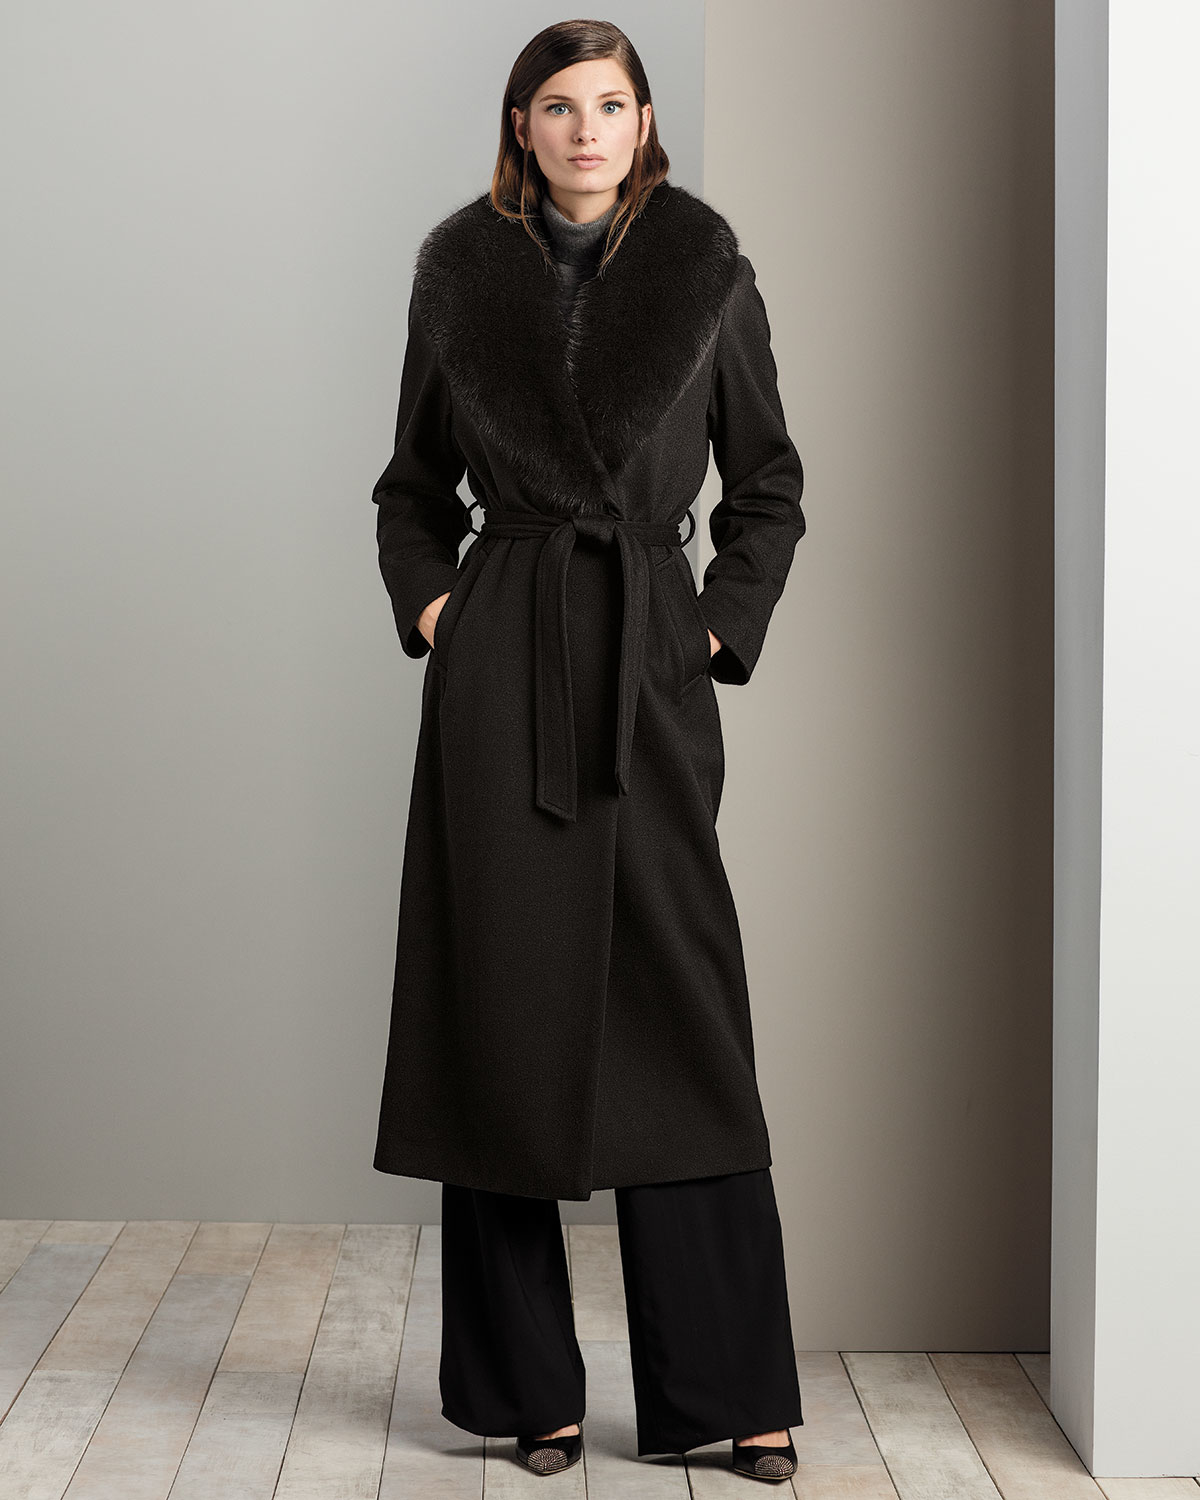 Sofia cashmere Fur-collar Belted Long Wrap Coat in Black | Lyst